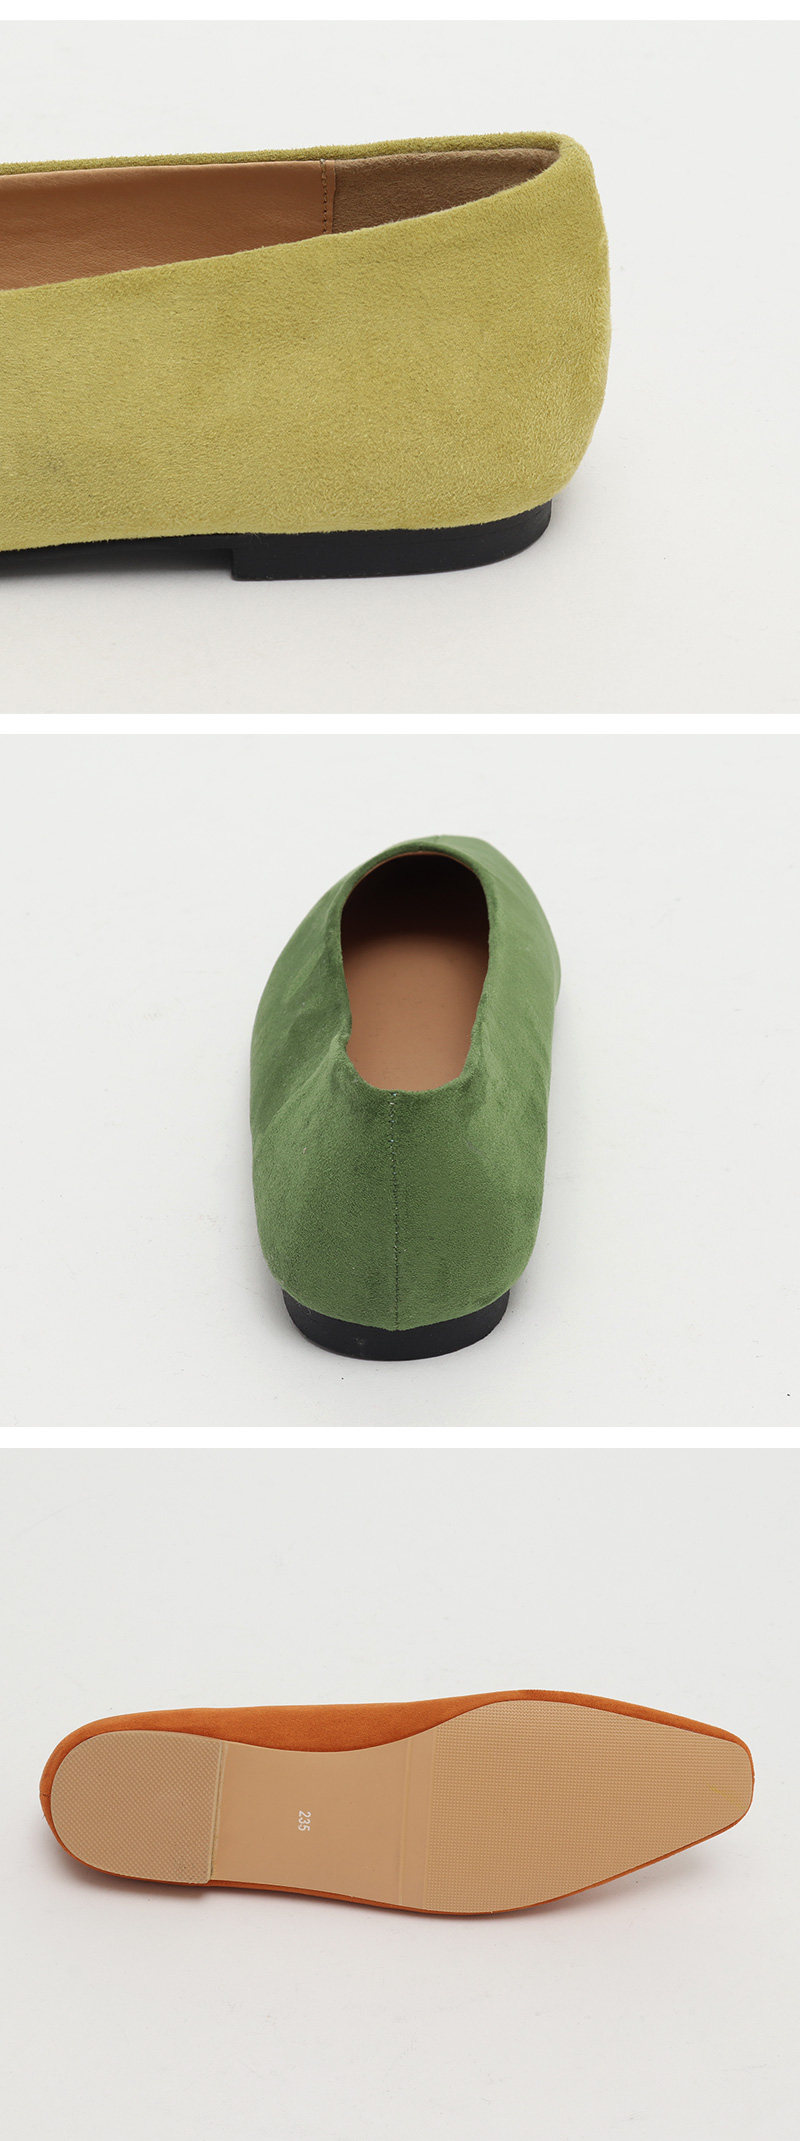 Lei suede flat shoes_J